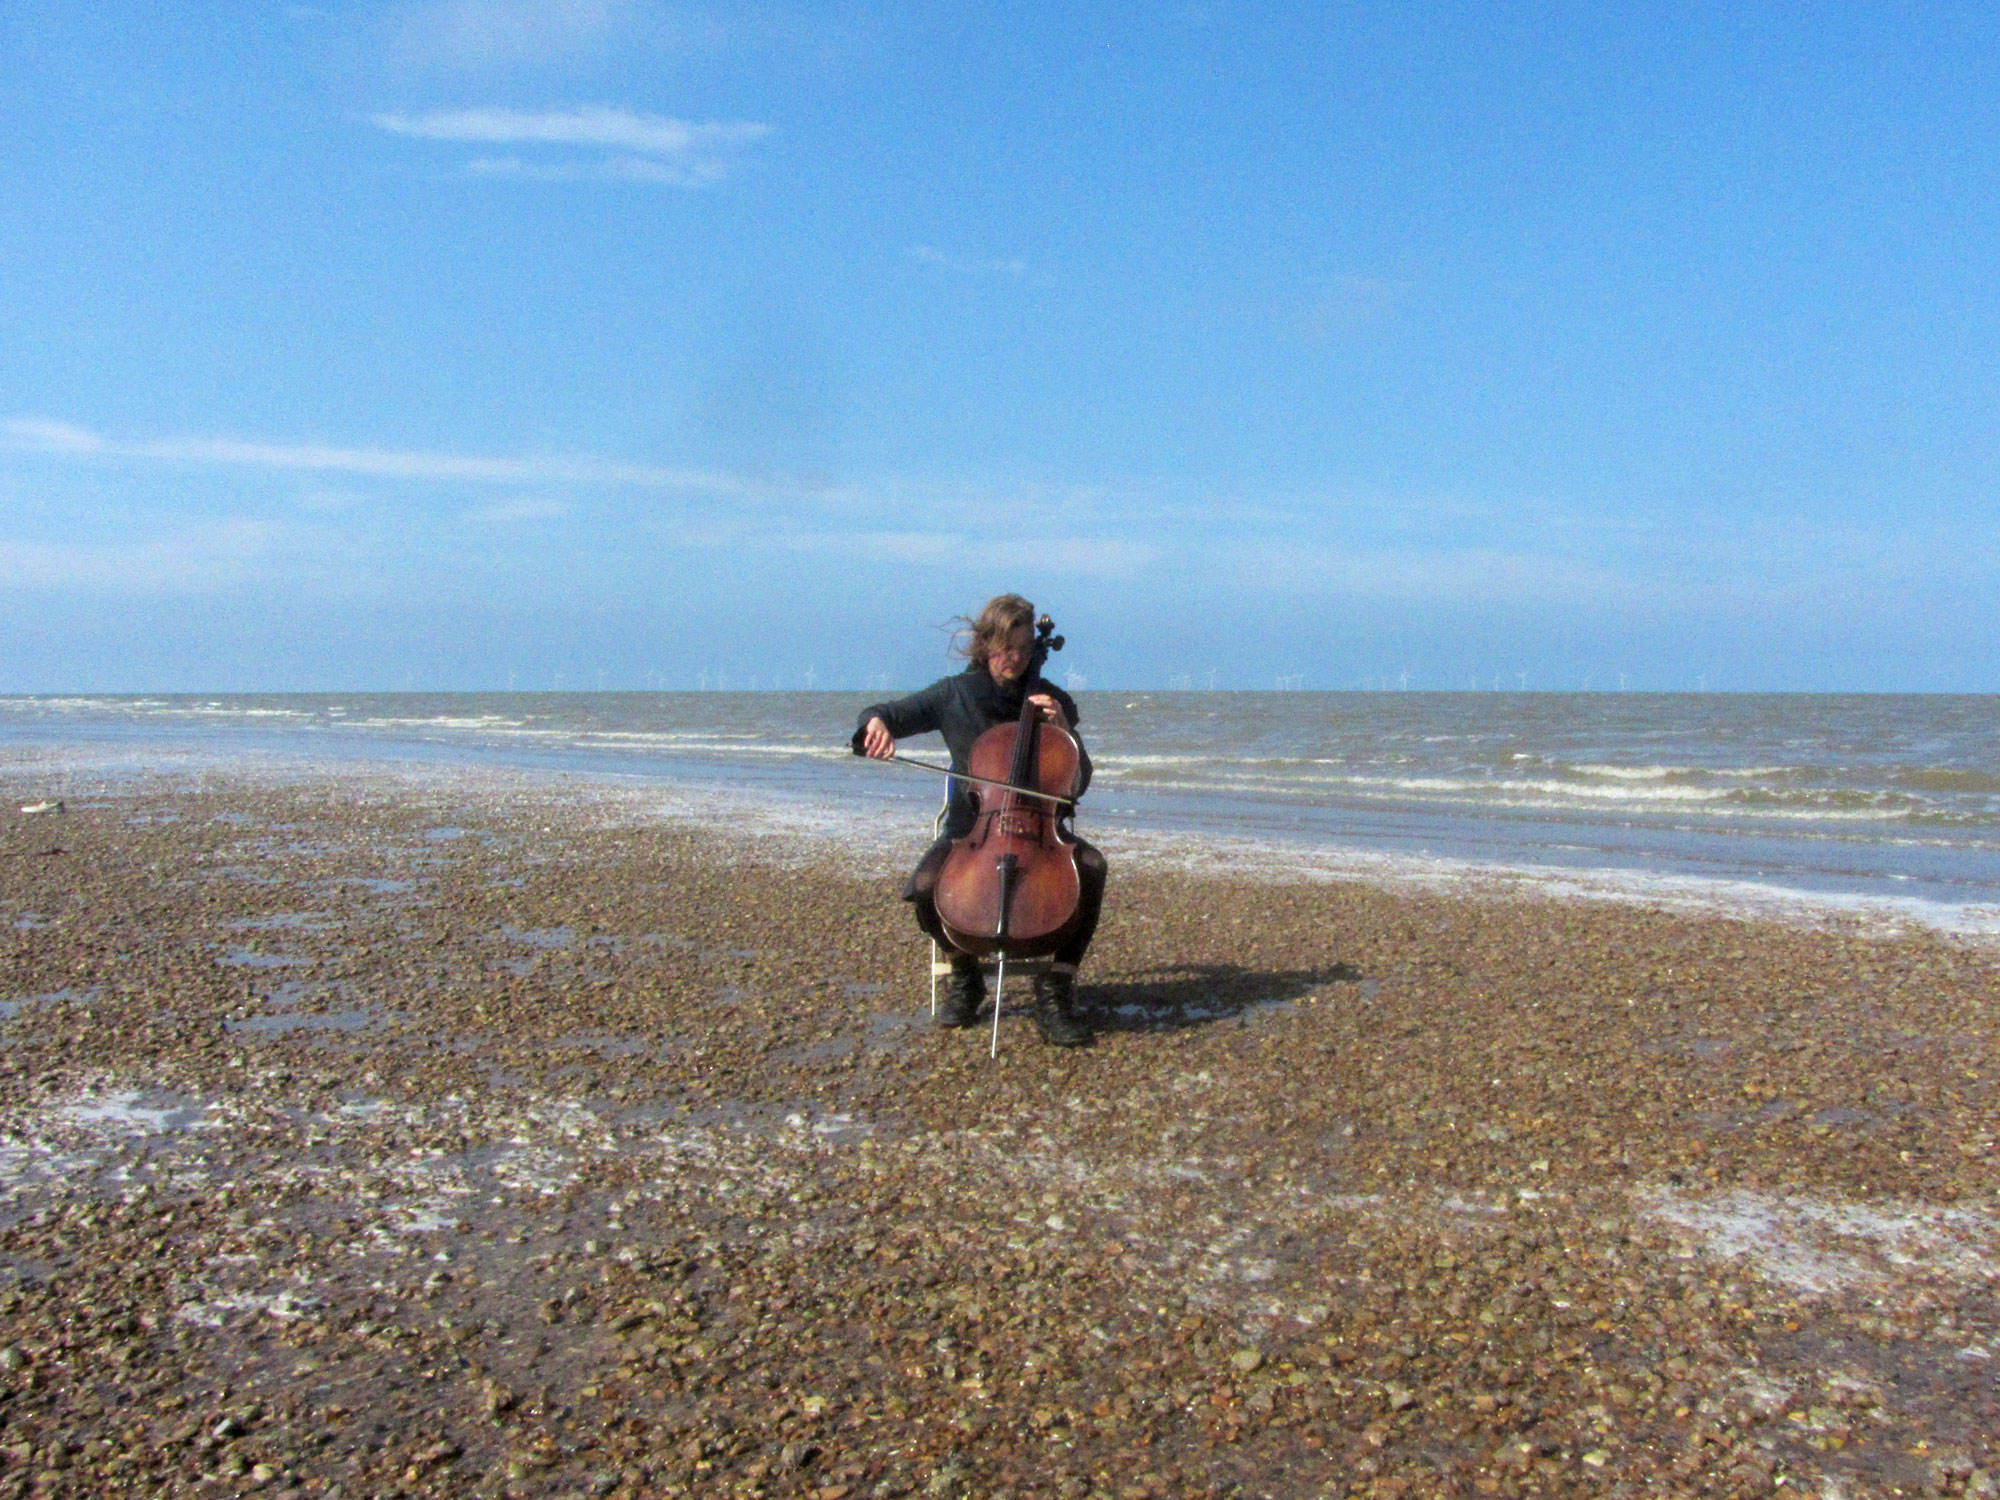 Under a blue sky, on a shingle beach, a woman plays a cello. Behind her we can see the sea.